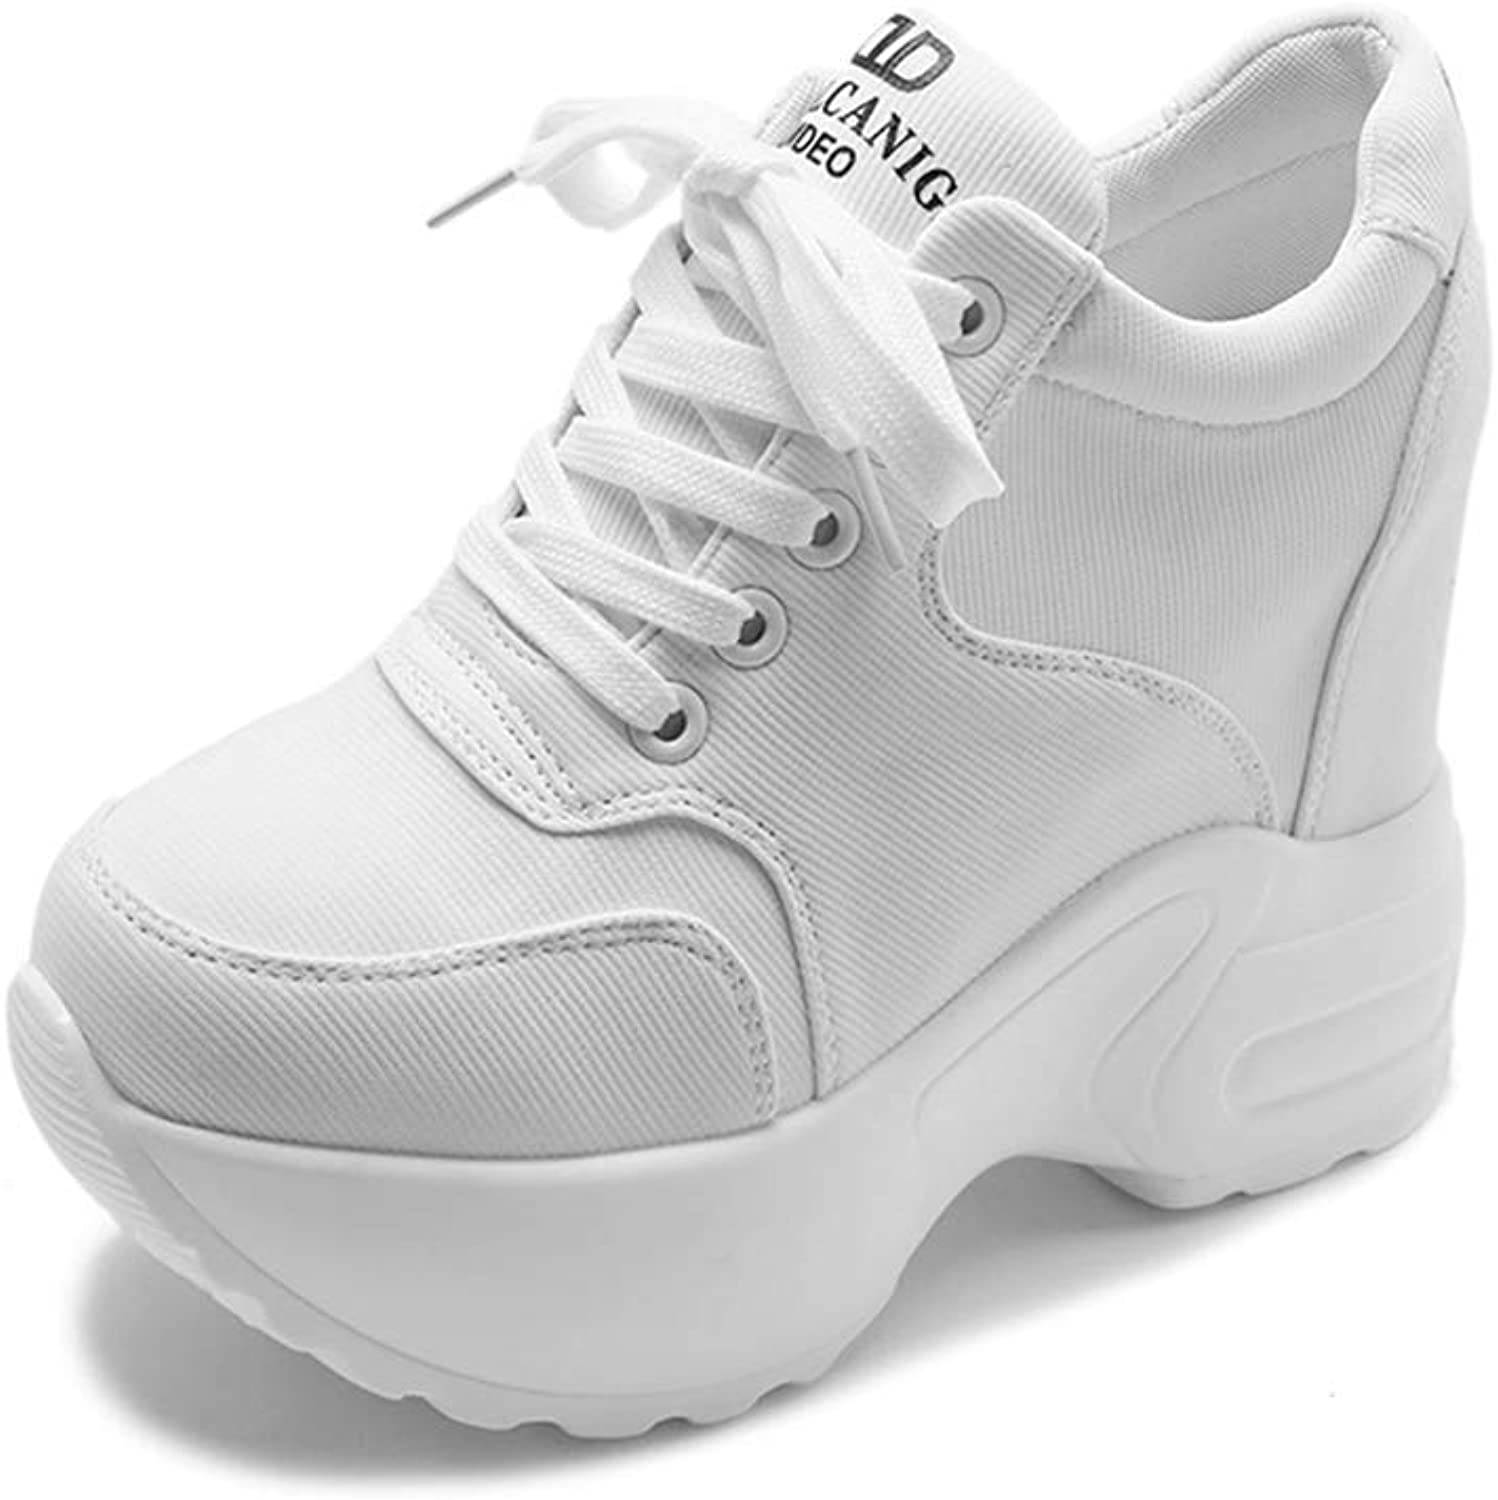 Gedigits Women Mesh Casual Platform Trainers White shoes Female Autumn Wedges Breathable Height Increasing shoes Red 7.5 M US